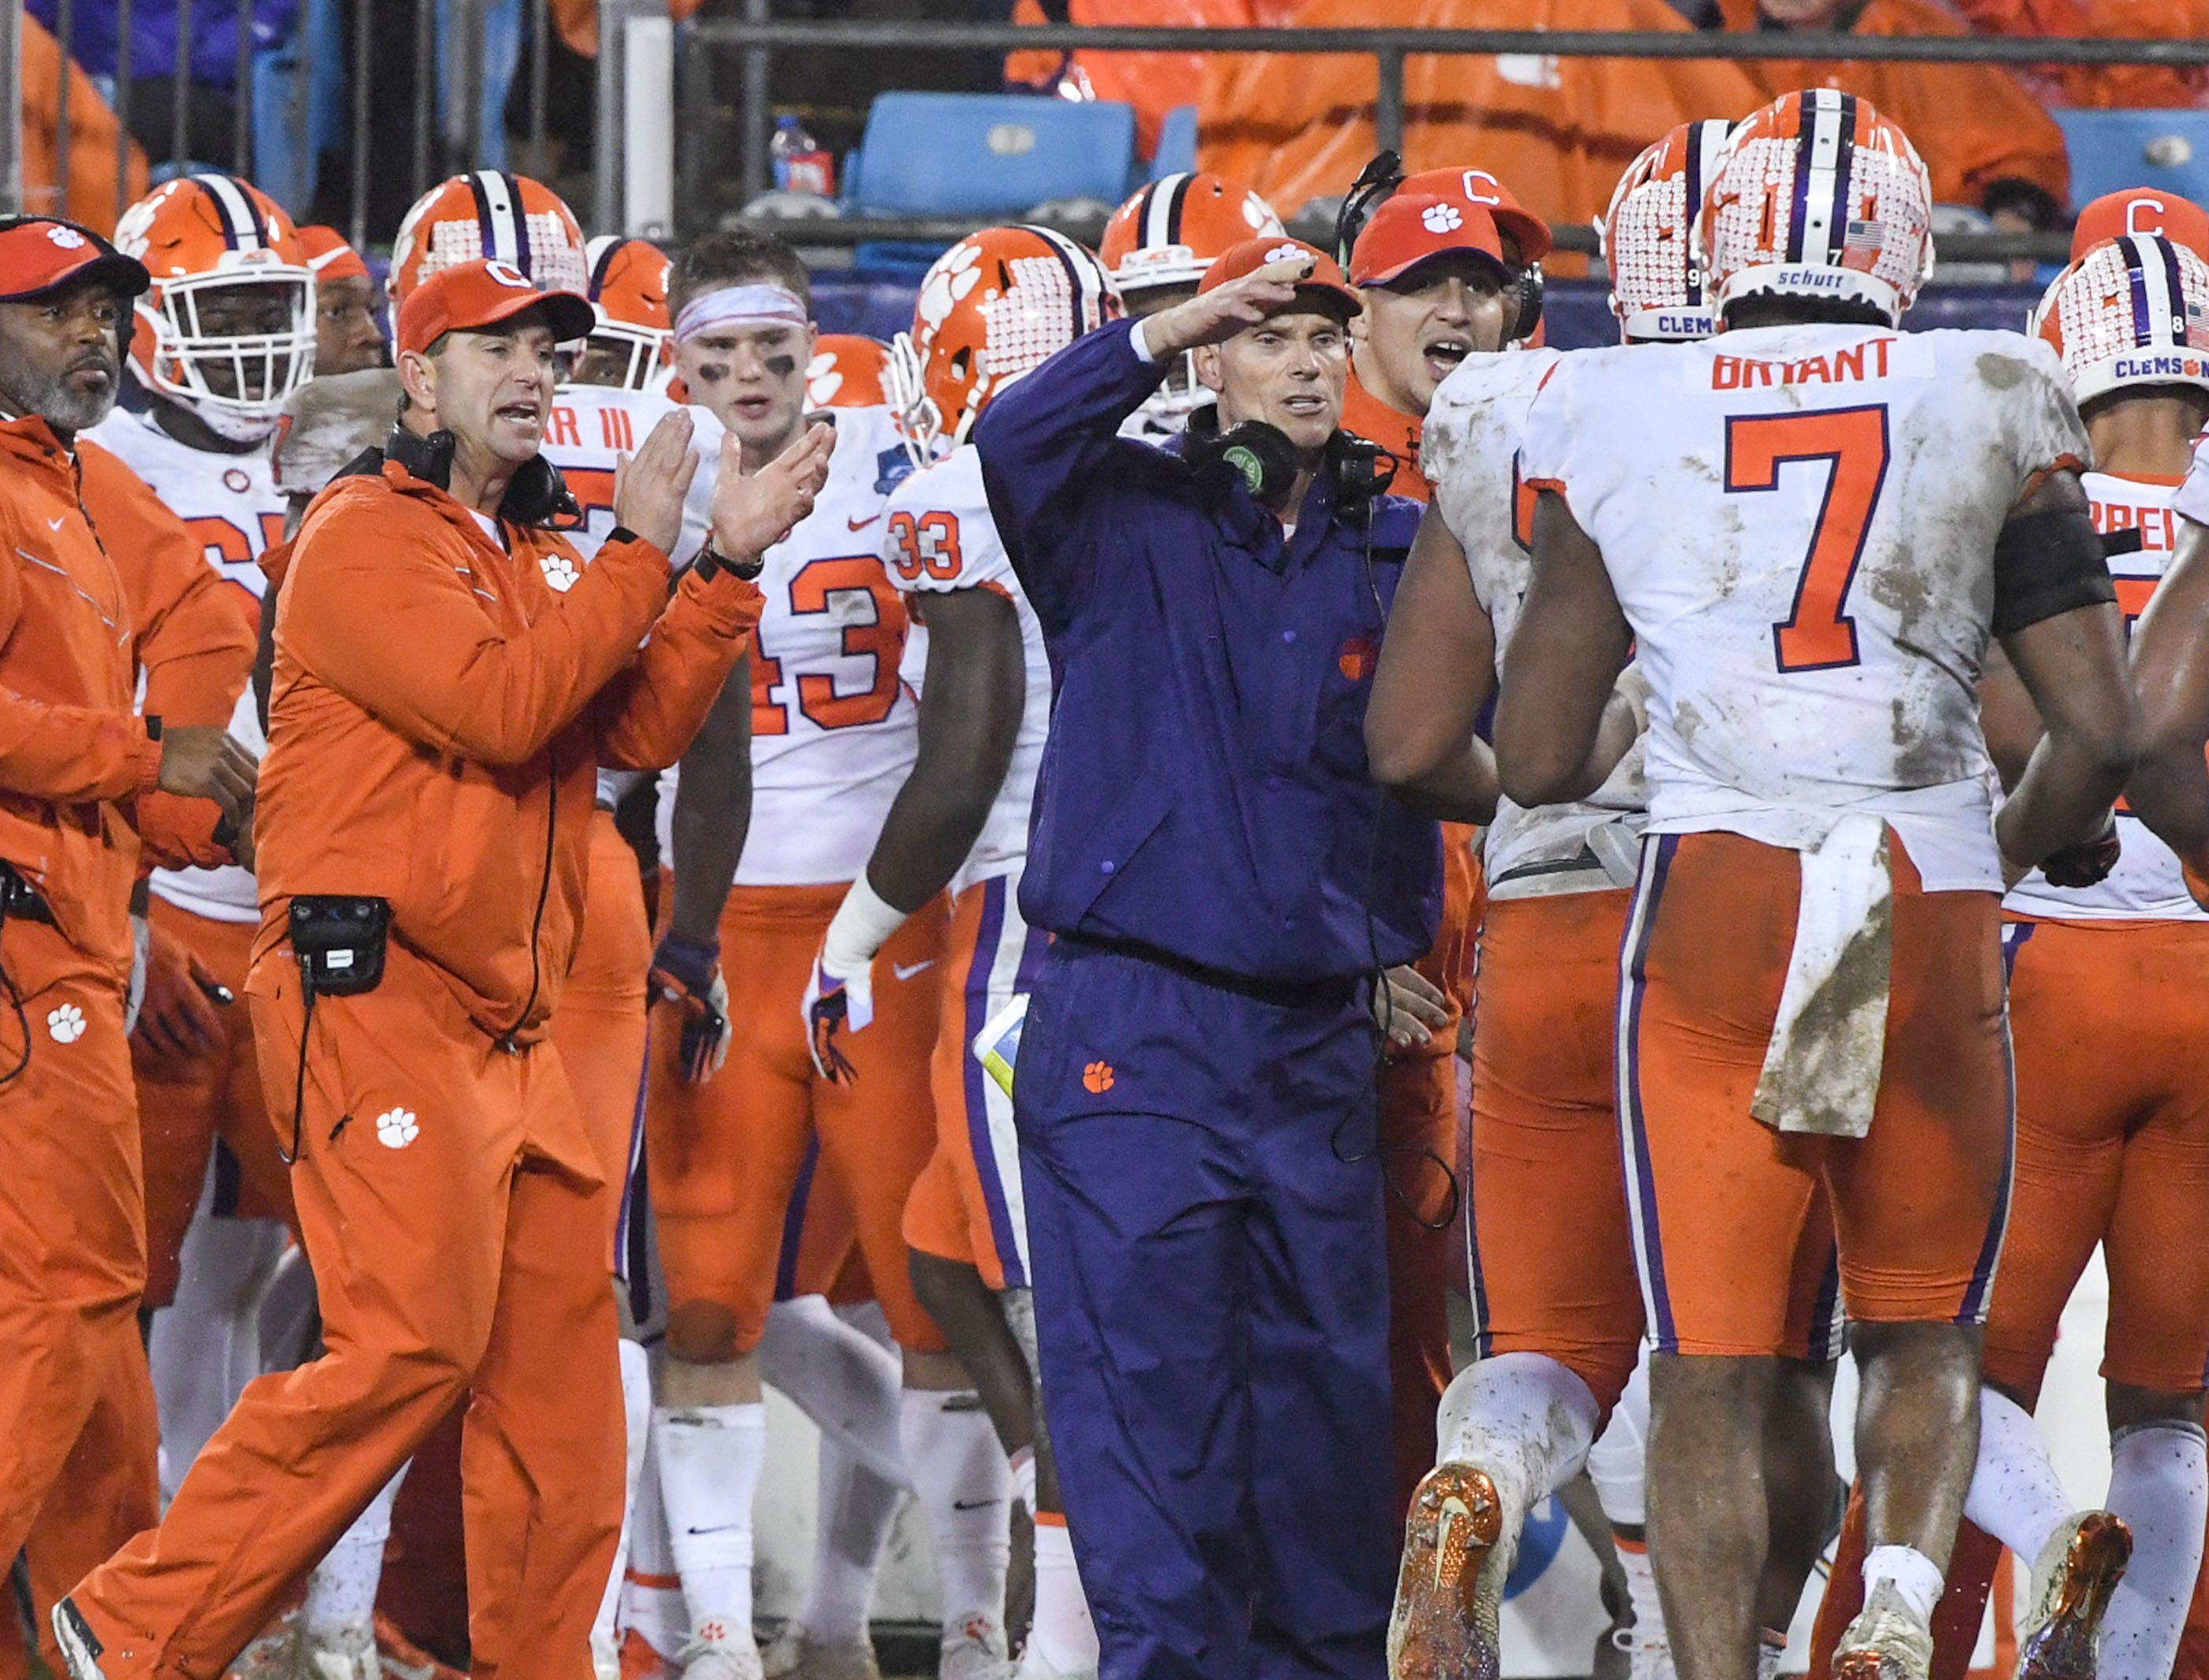 Clemson Head Coach Dabo Swinney, left, and Clemson Defensive Coordinator Brent Venables greet defensive lineman Austin Bryant (7) and others after stopping Pittsburgh offense during the third quarter of the Dr. Pepper ACC football championship at Bank of America Stadium in Charlotte, N.C. on Saturday, December 1, 2018.